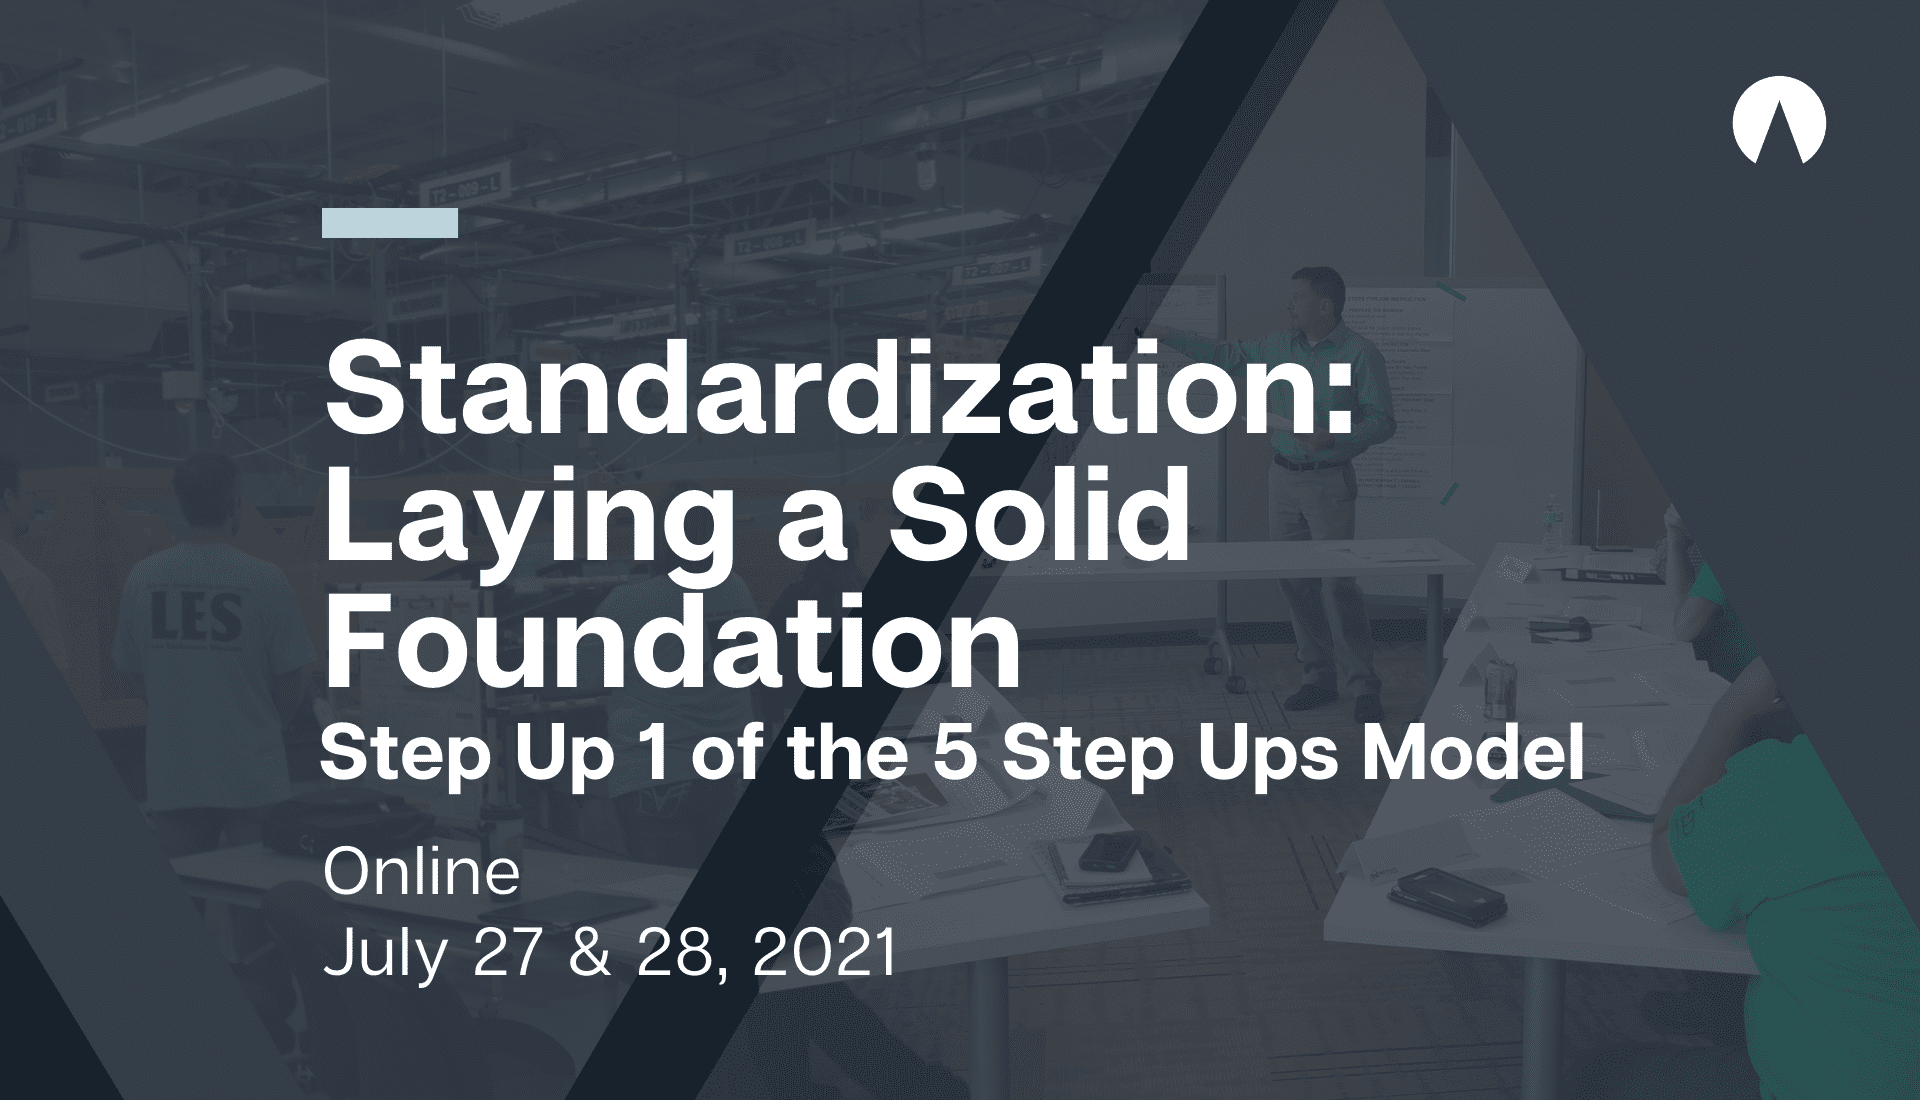 Standardization: Laying a Solid Foundation, Step Up 1 of the 5 Step Up Model